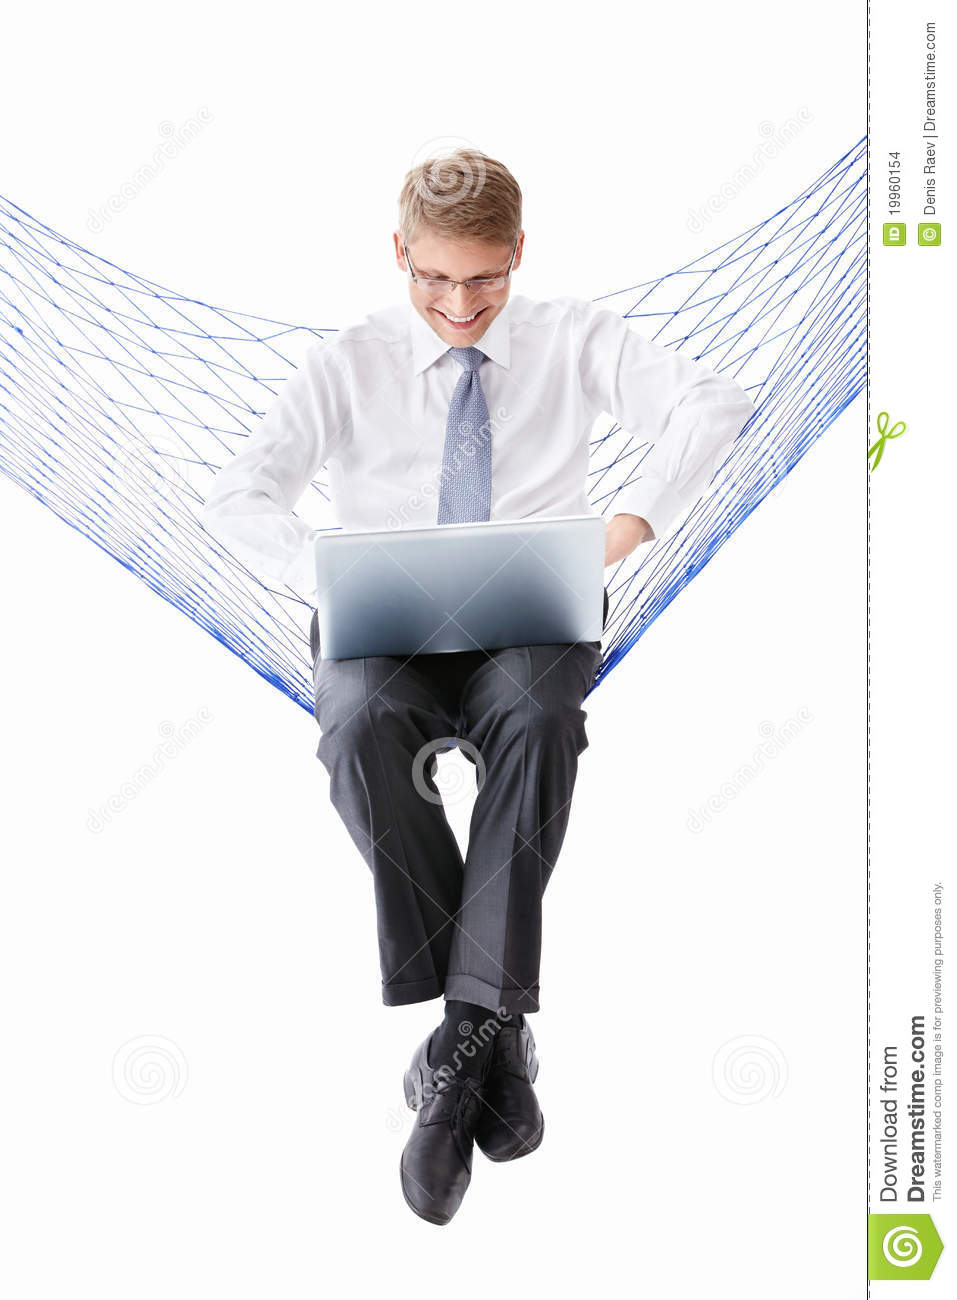 A man in a tie with a laptop